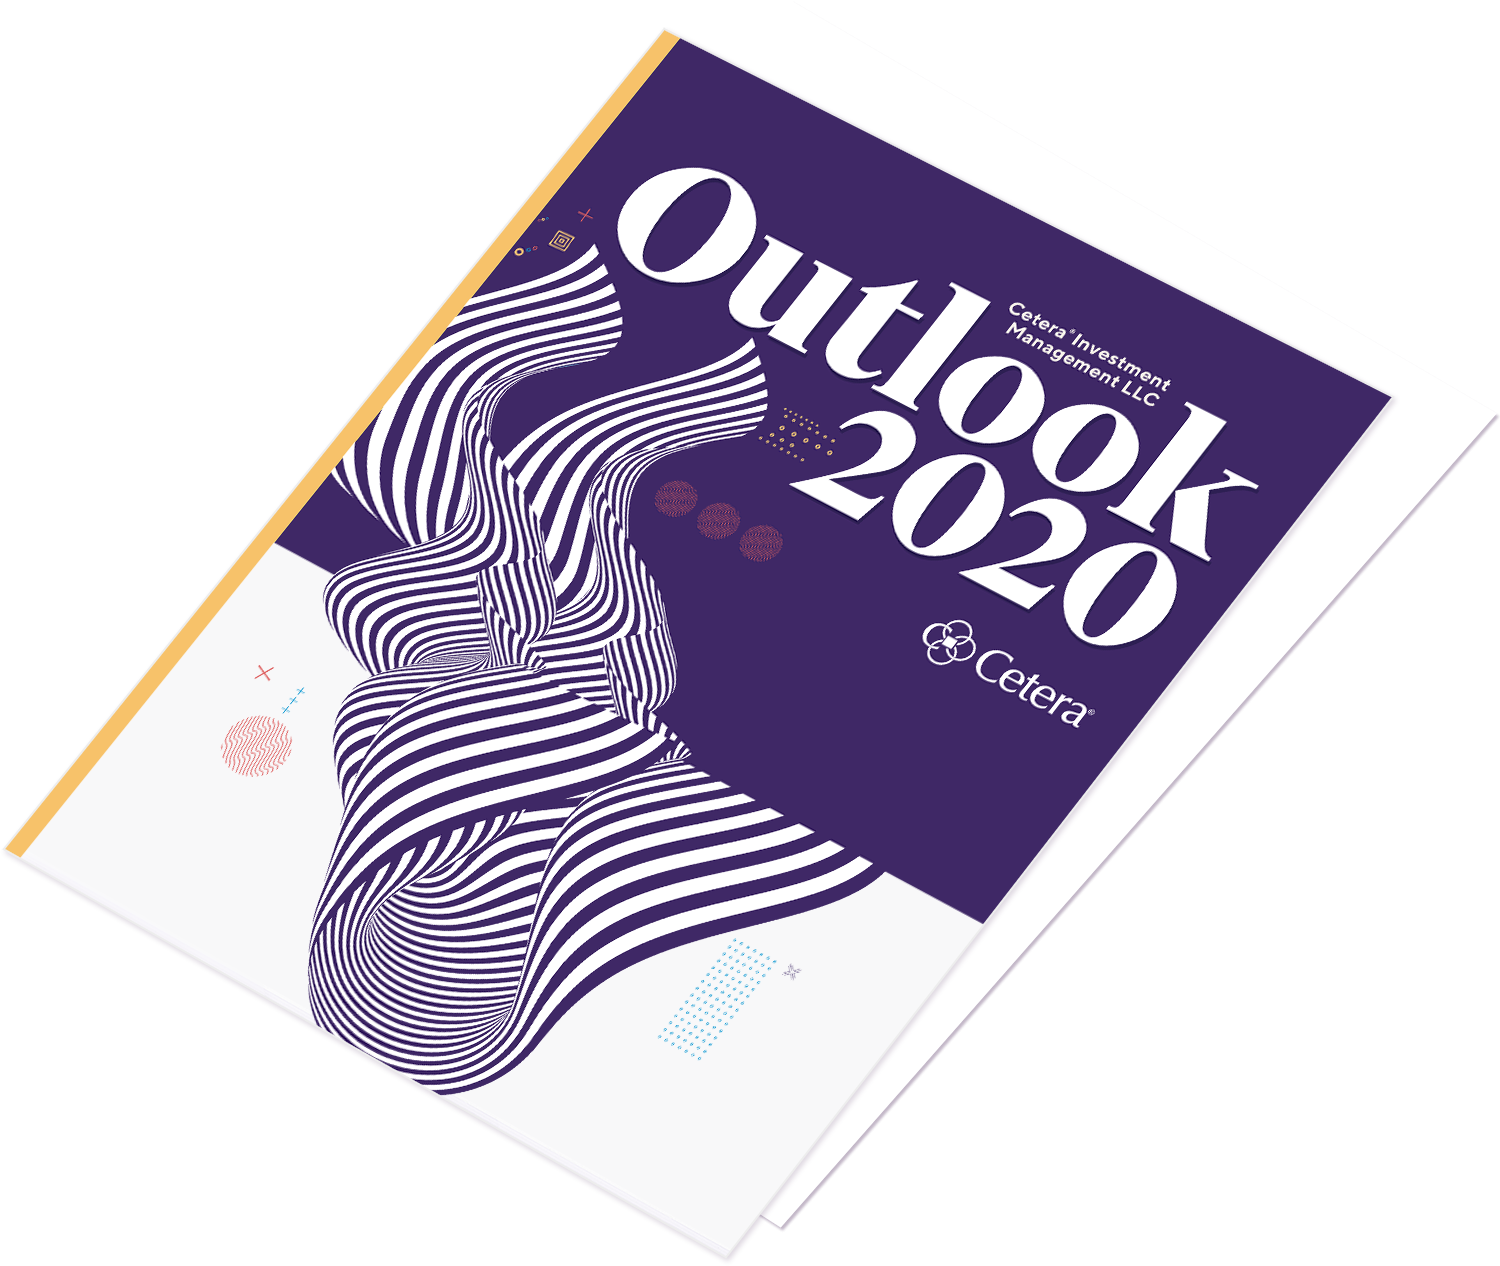 Outlook 2020 - It's Always a Matter of Perspective